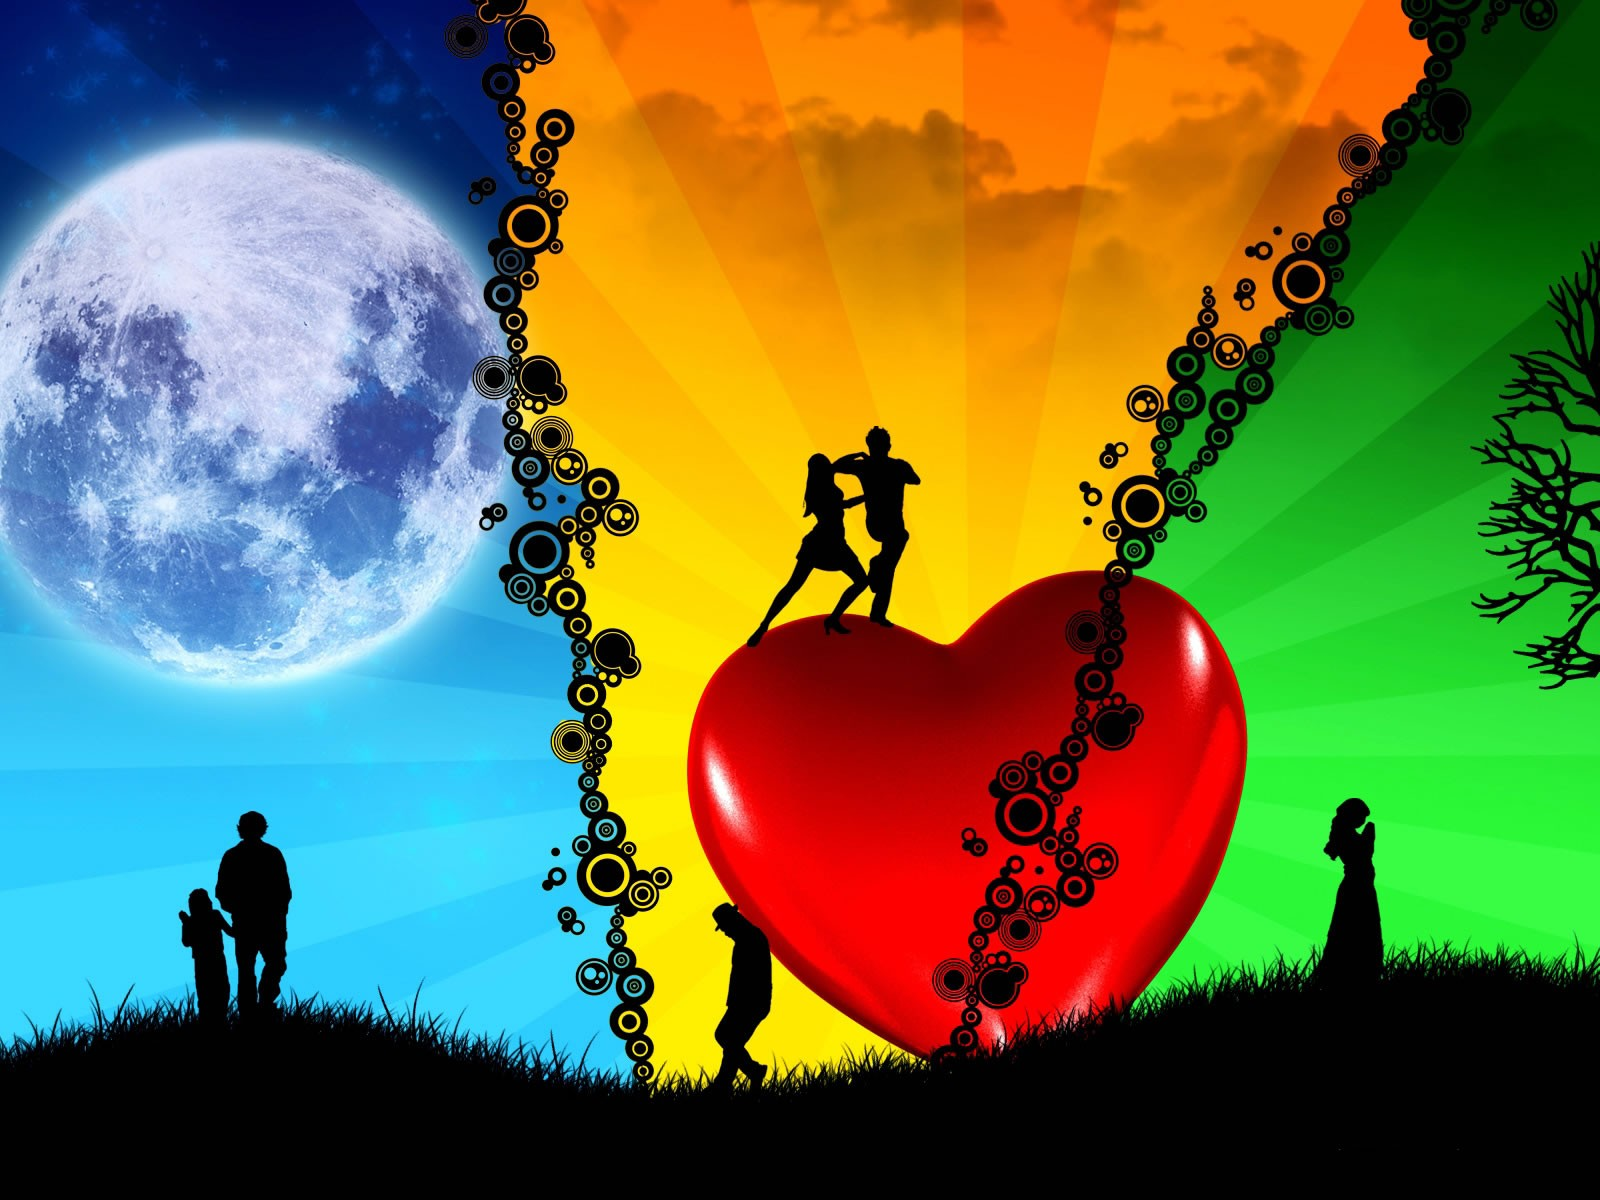 Awesome Wallpapers Of Love   Awesome Pics Of Love